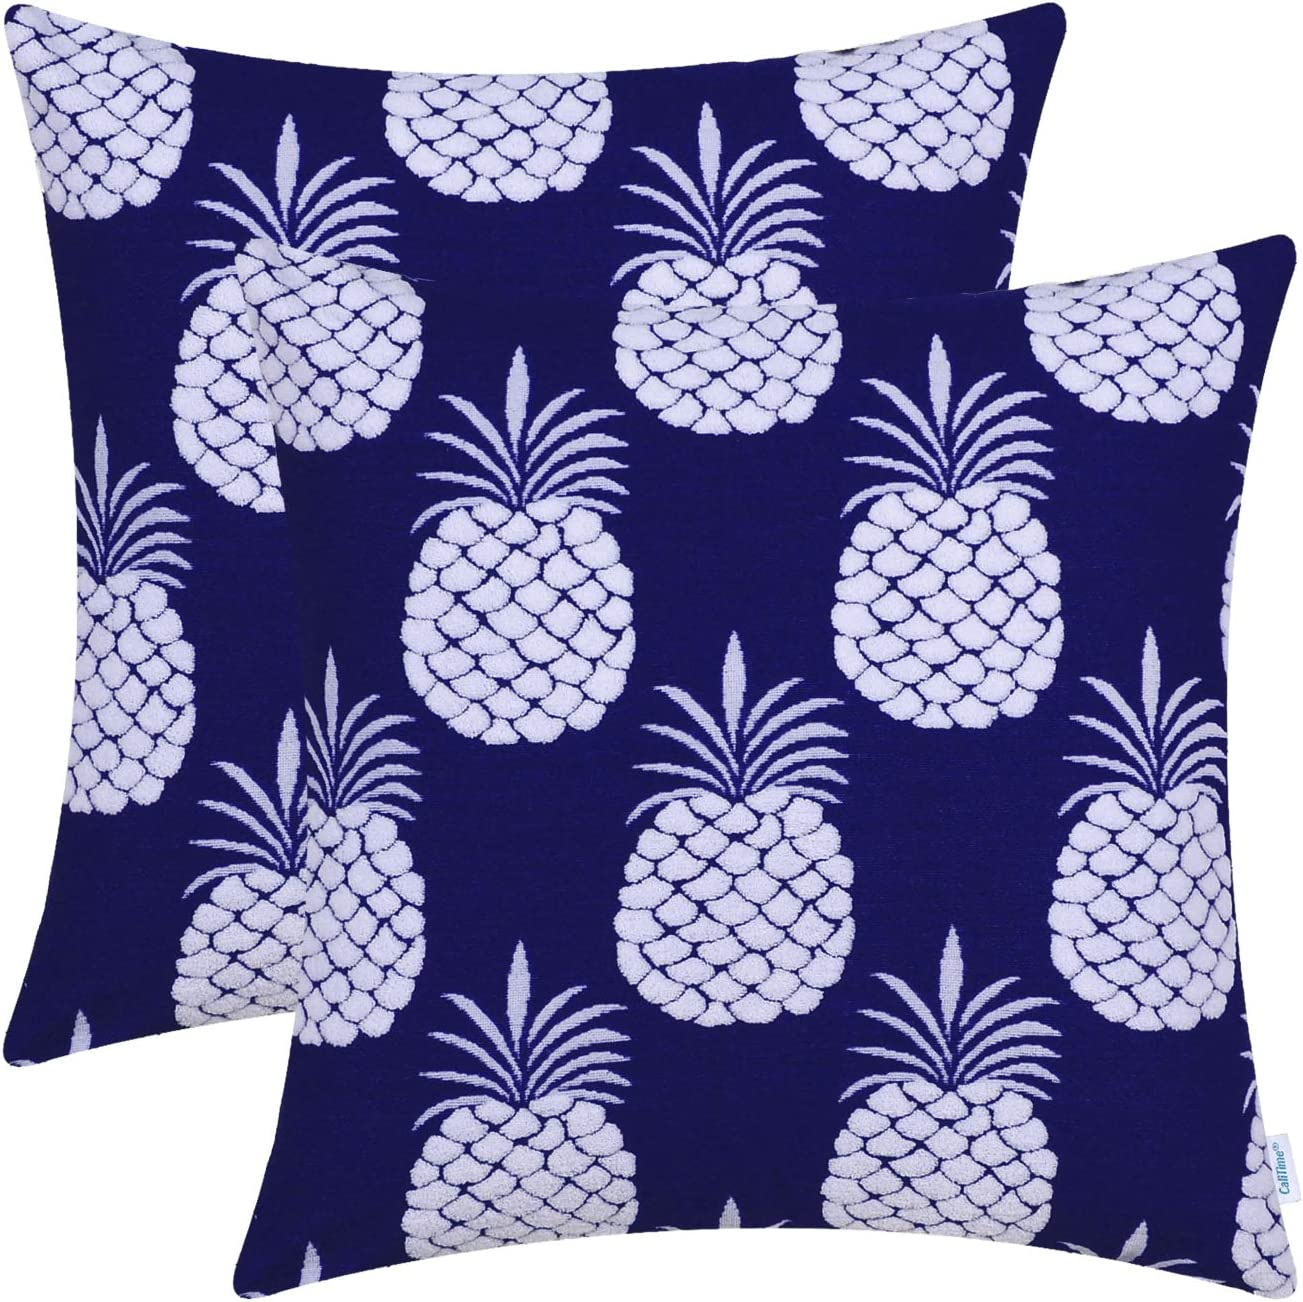 CaliTime Pack of 2 Supersoft Throw Pillow Covers Cases for Couch Sofa Bed Bedding Fluffy White Pineapple Fruit 18 X 18 Inches Navy Blue